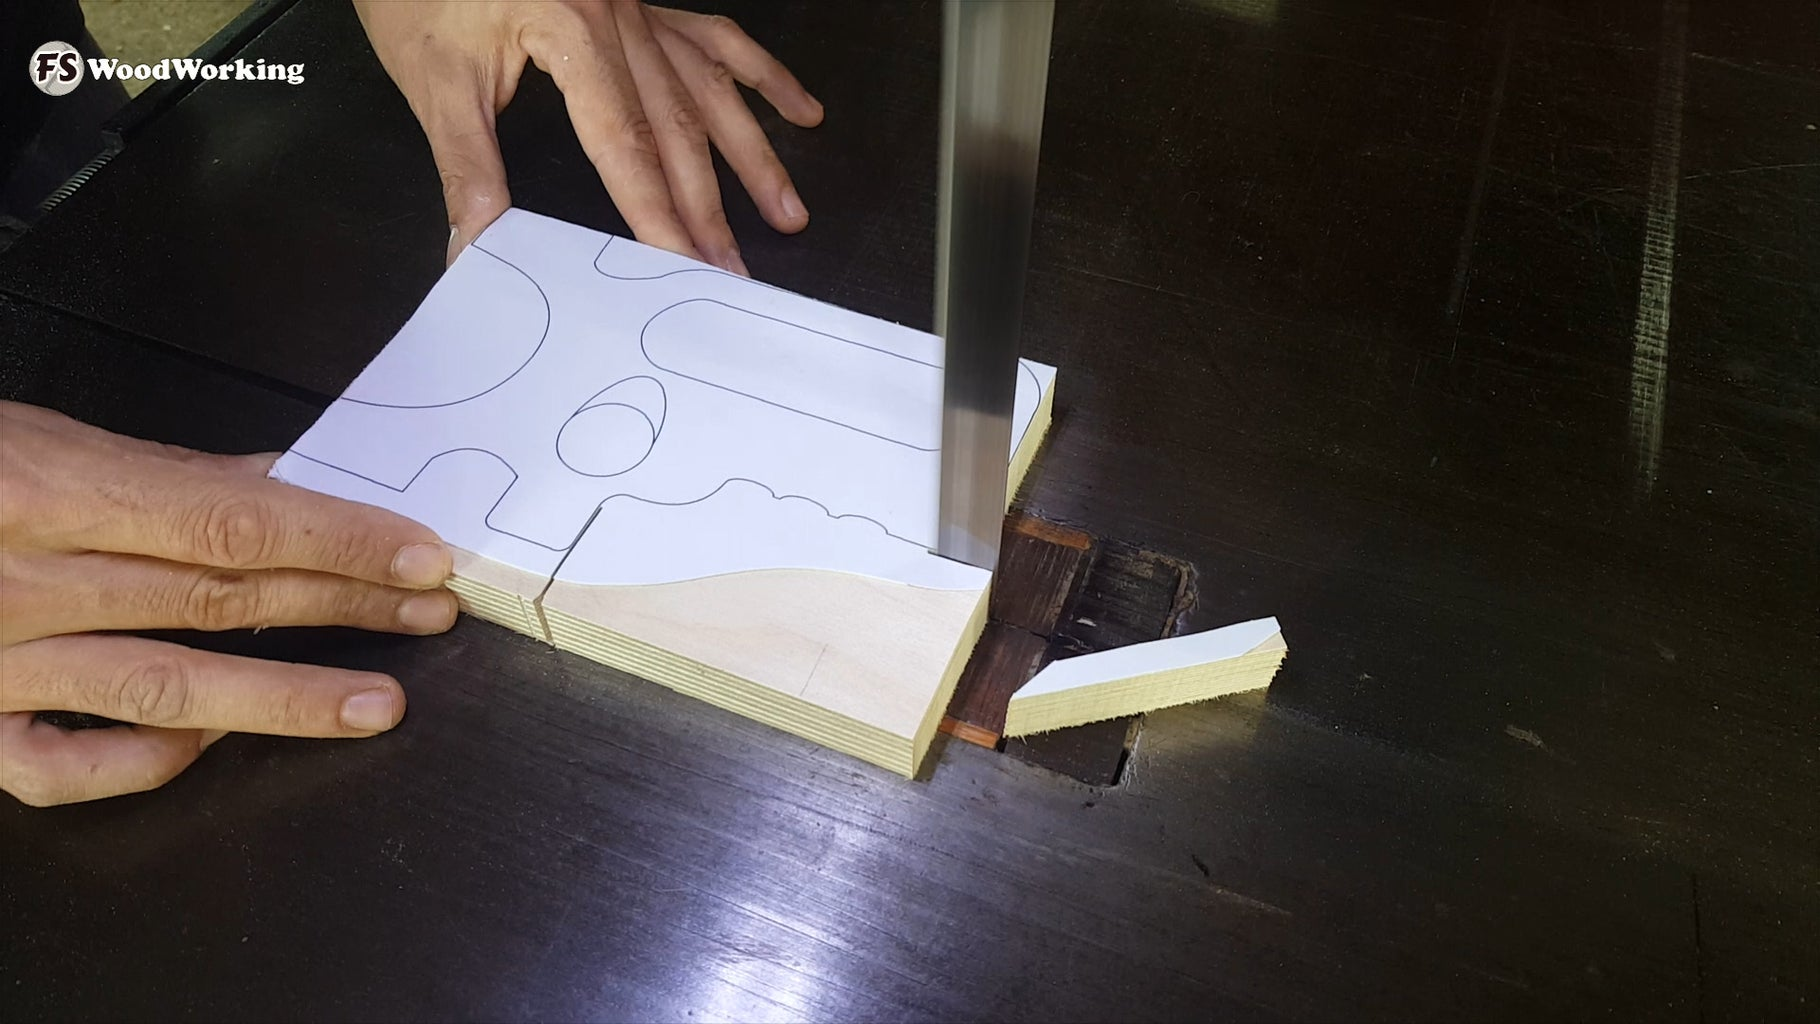 The Handle (Part a on the Plans)